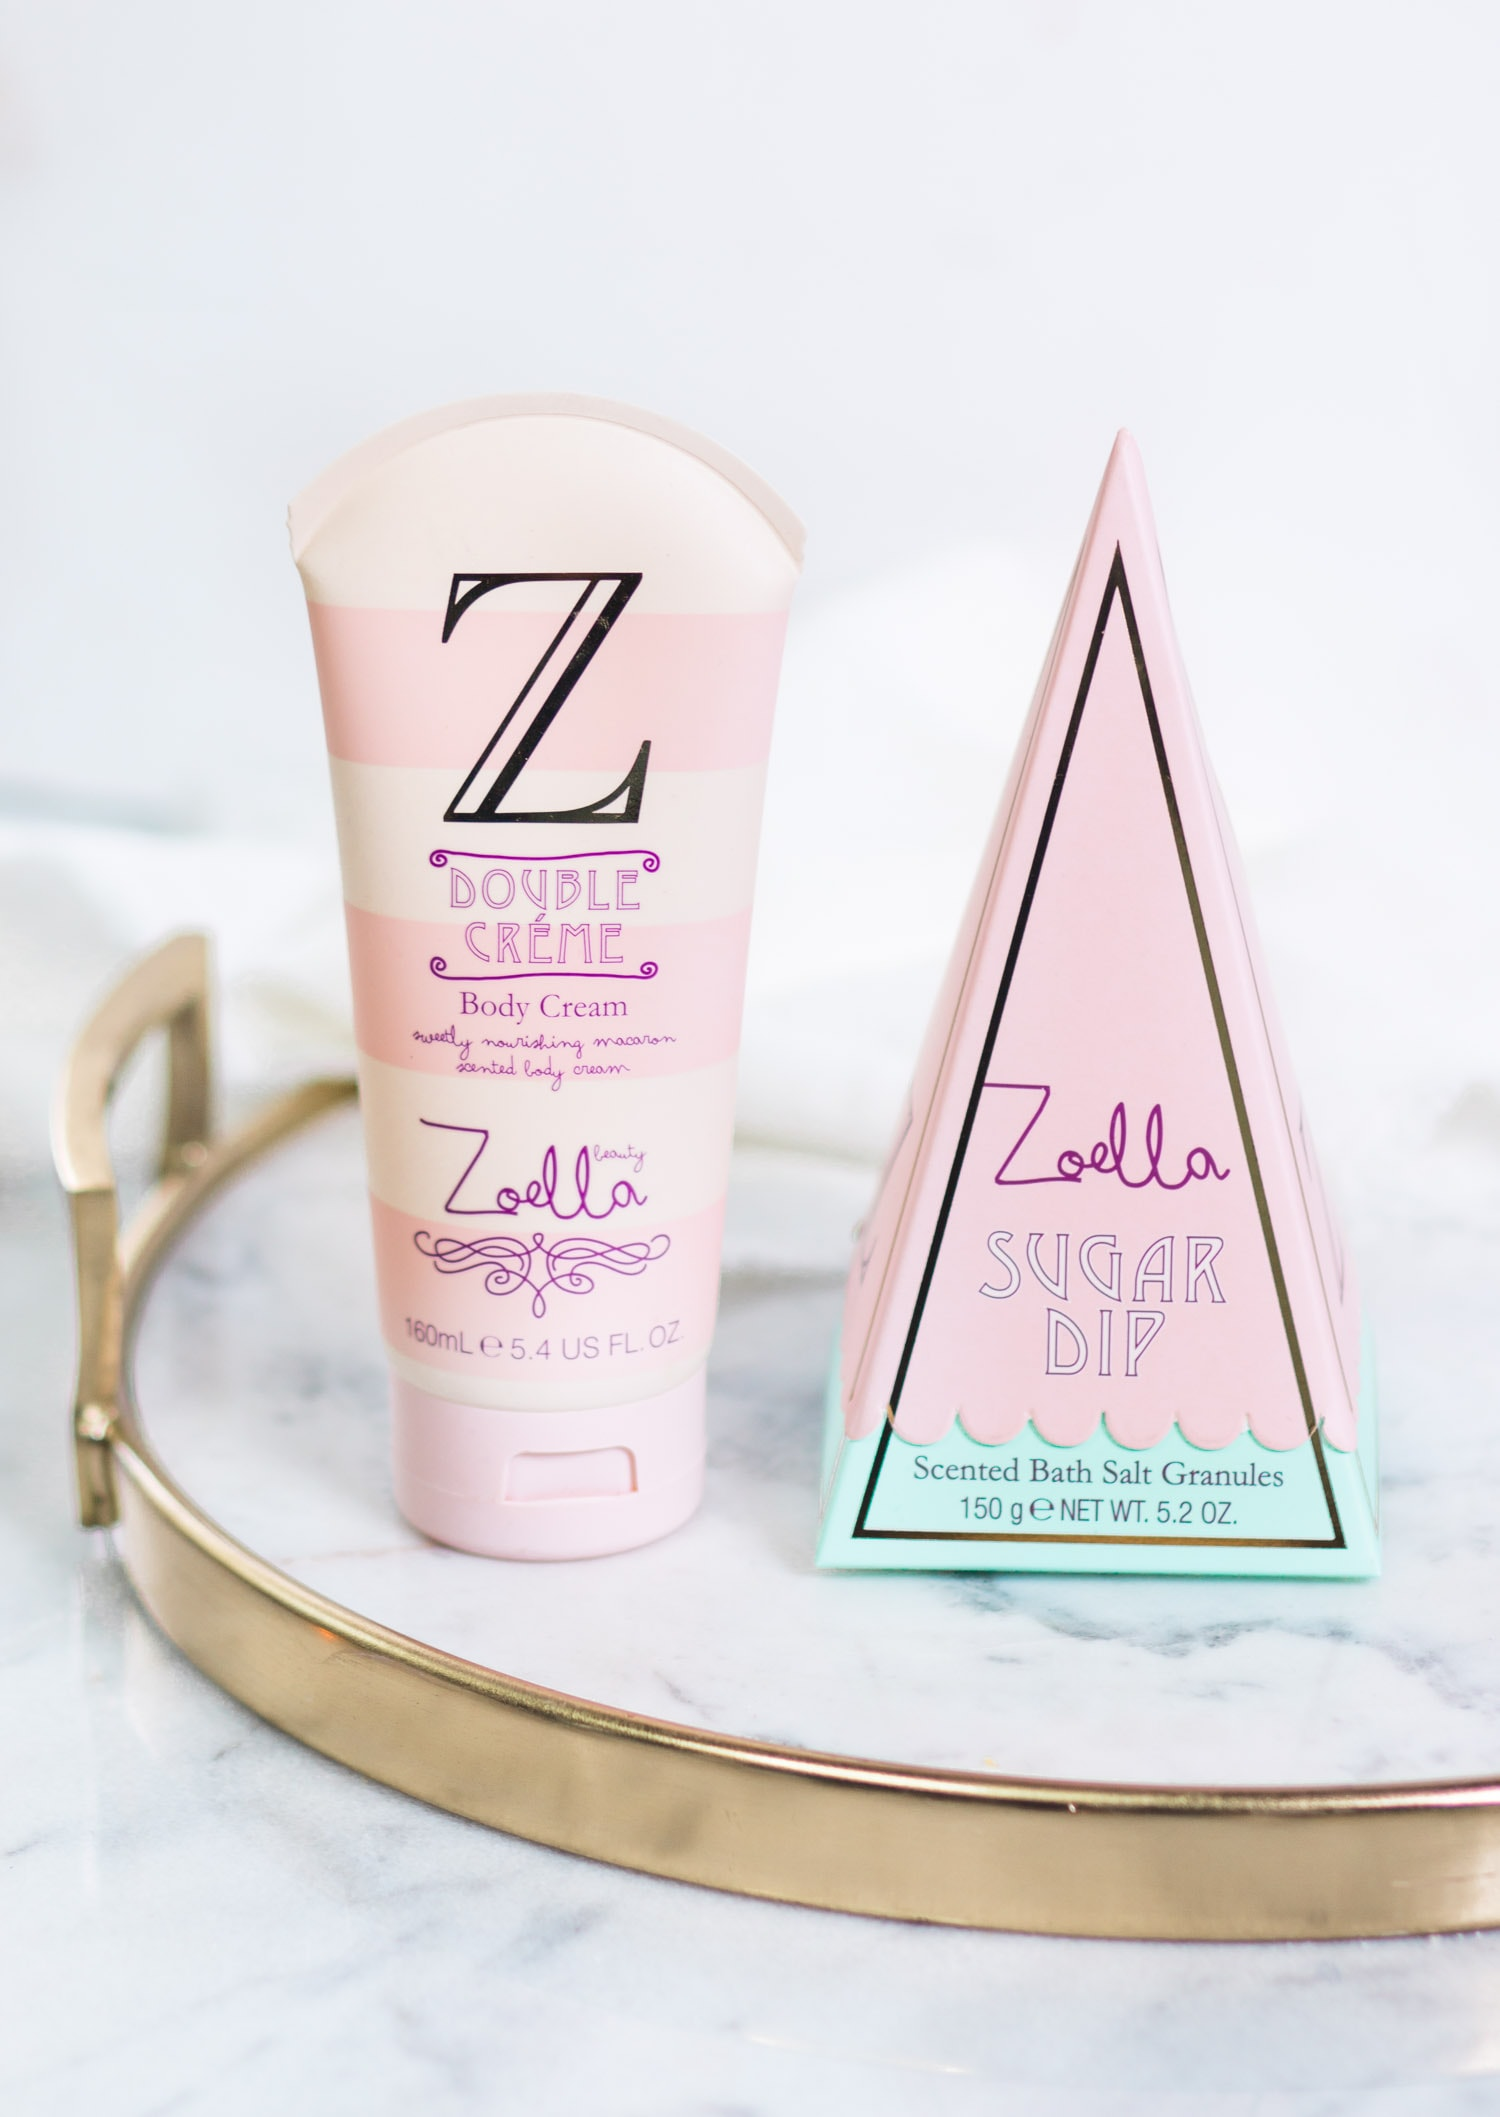 Zoella Beauty Sweet Inspirations |  Double Creme body cream and Sugar Dip scented bath salt granules review | beauty blogger Ashley Brooke Nicholas